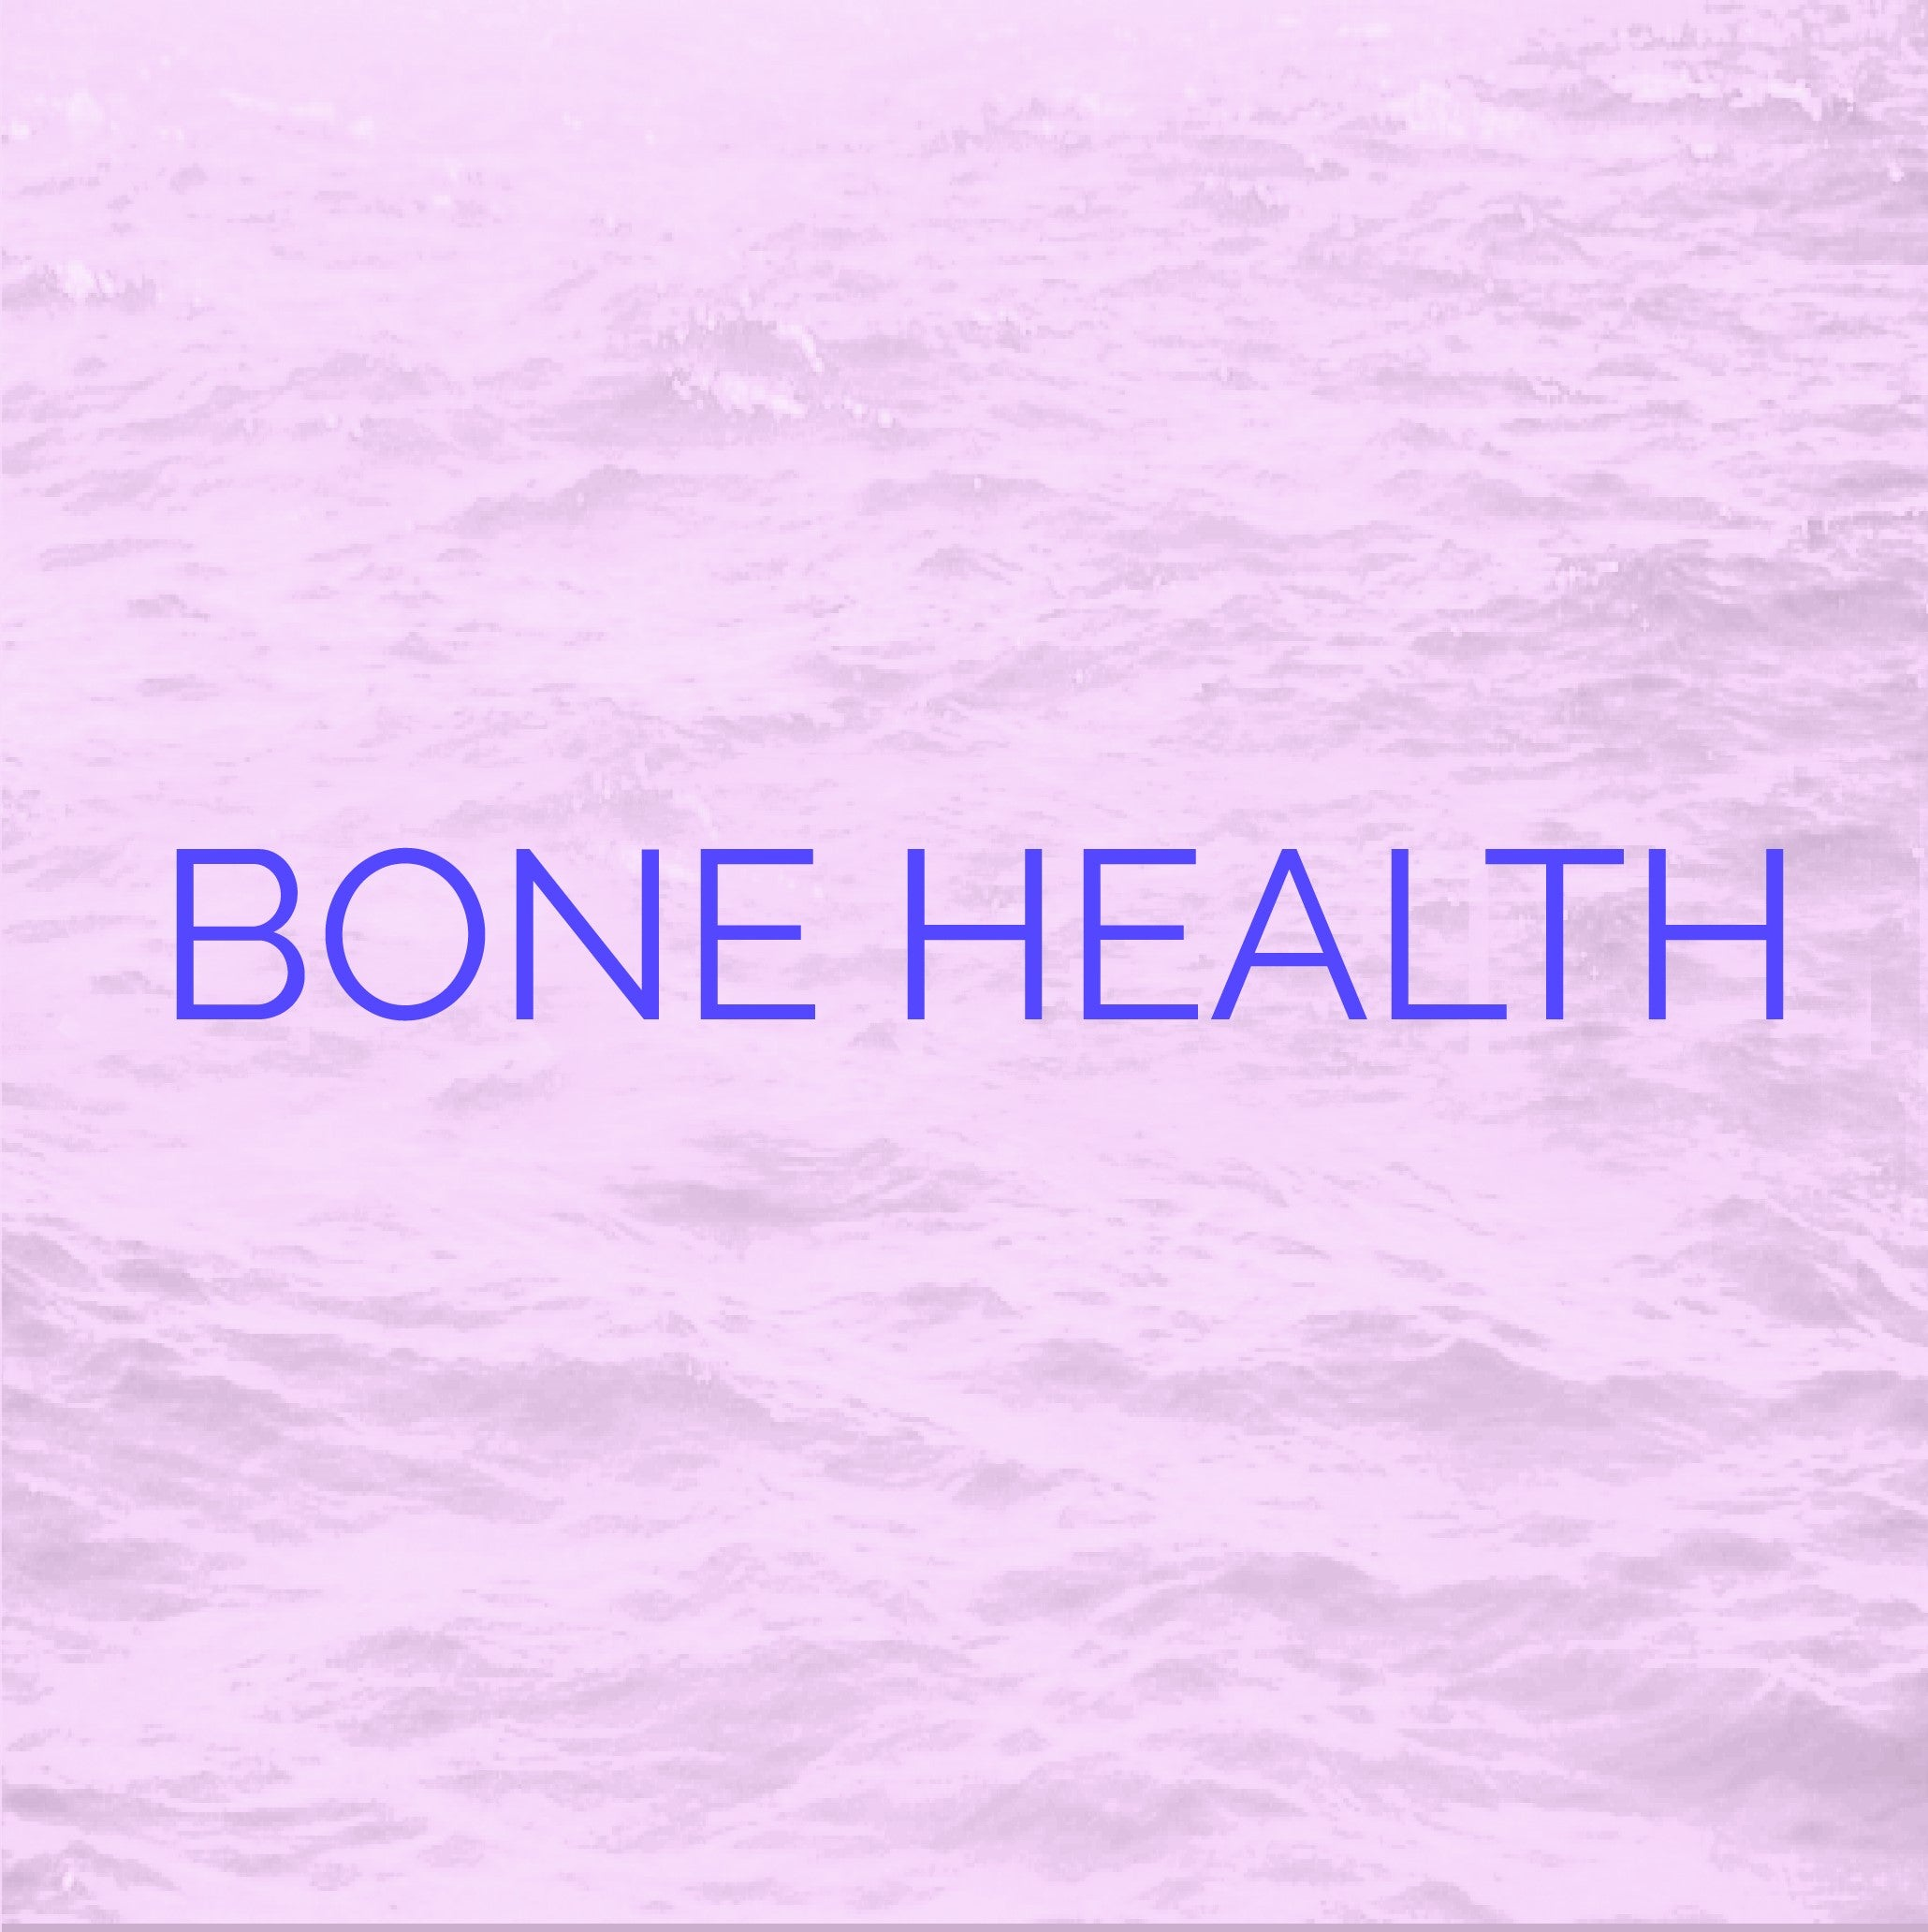 An icon representing Bone Health